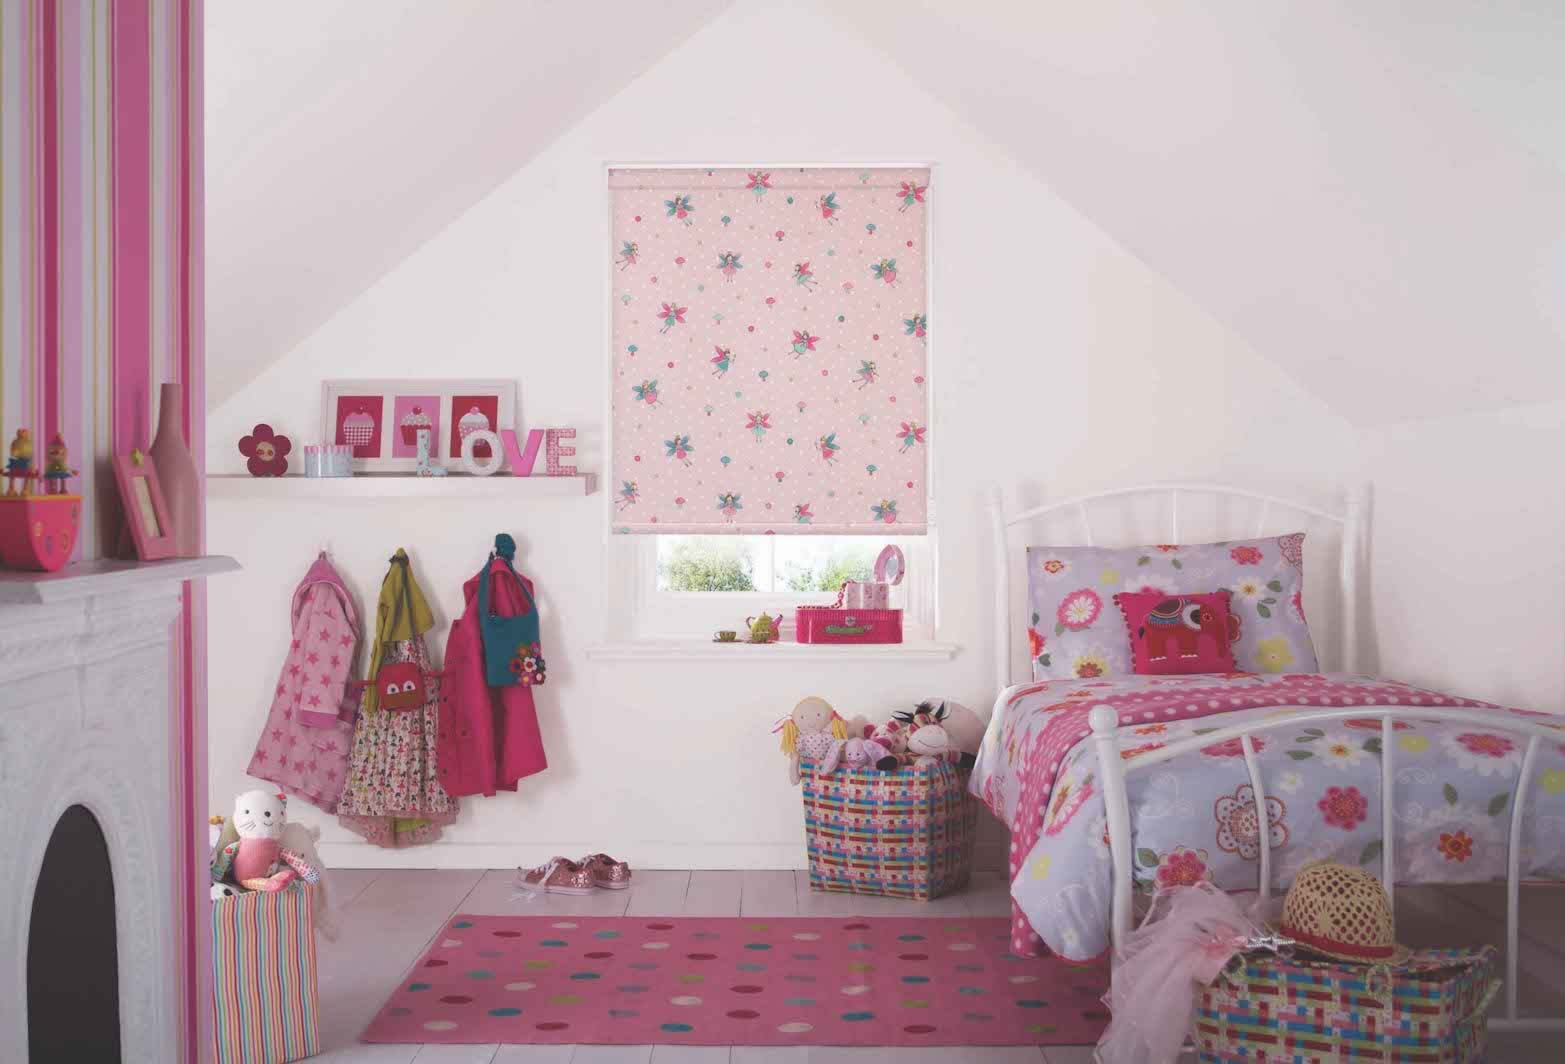 Roller Blinds - Fairytale Daisy